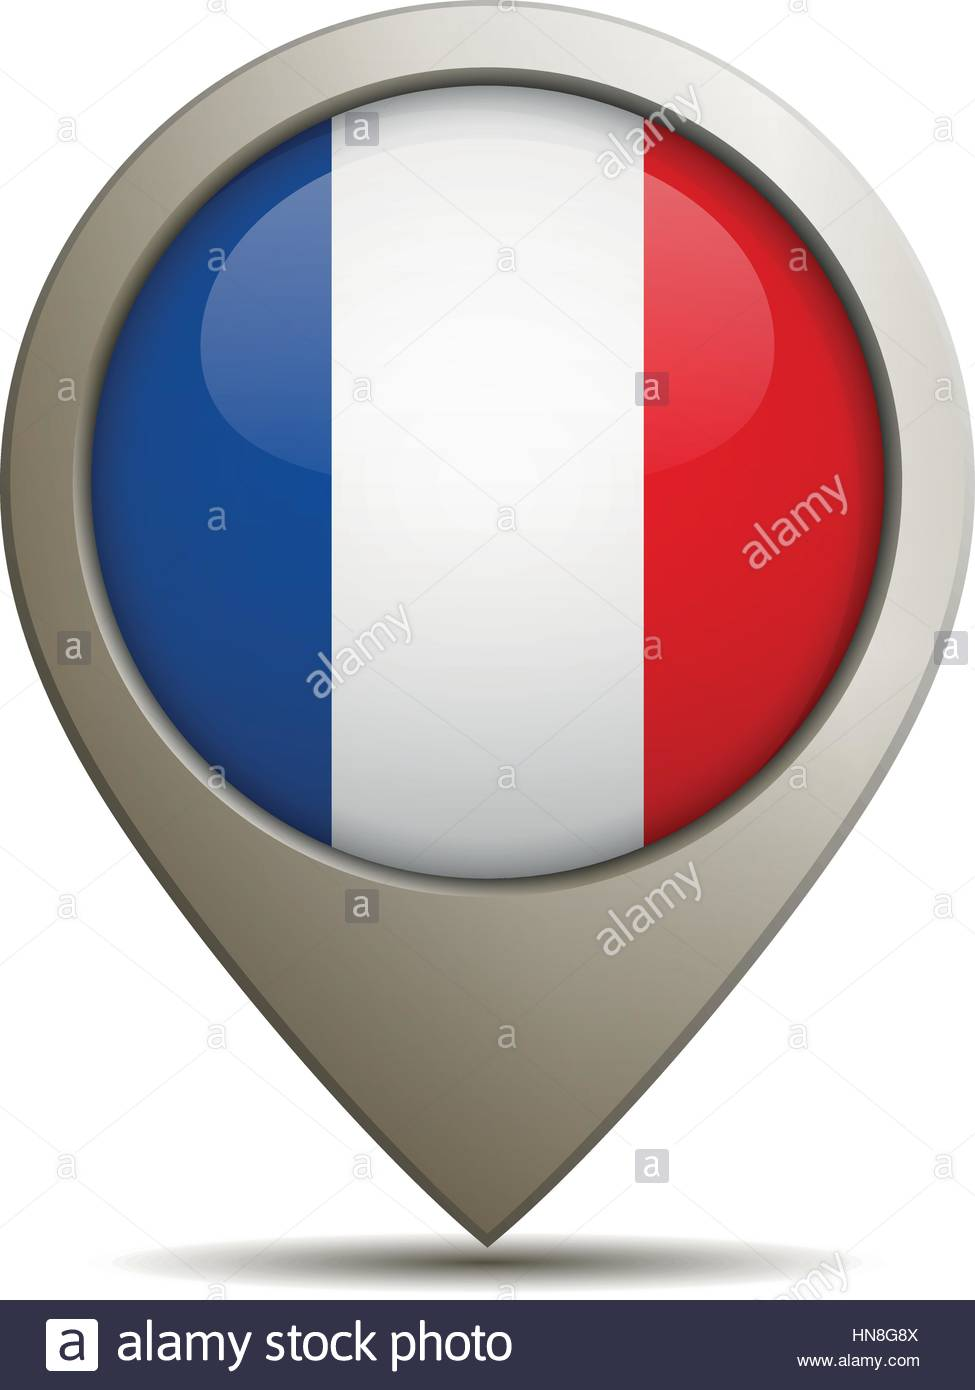 Vector Illustration Of A Straight Location Pin With French Flag. - Stock Image